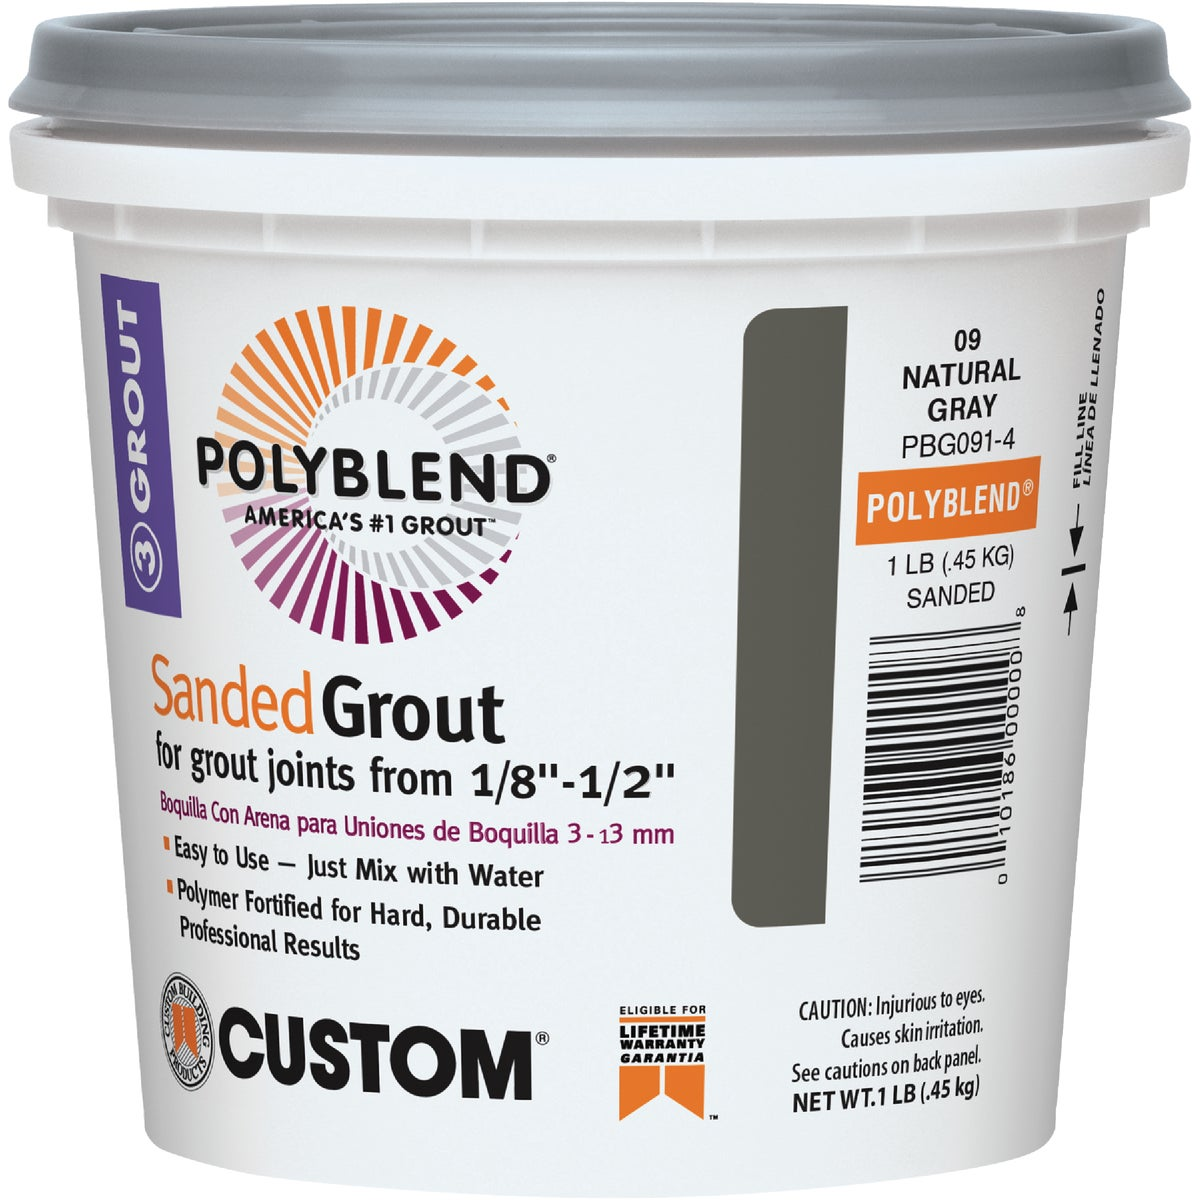 1LB SANDED HAYSTAC GROUT - PBG3801-4 by Custom Building Prod